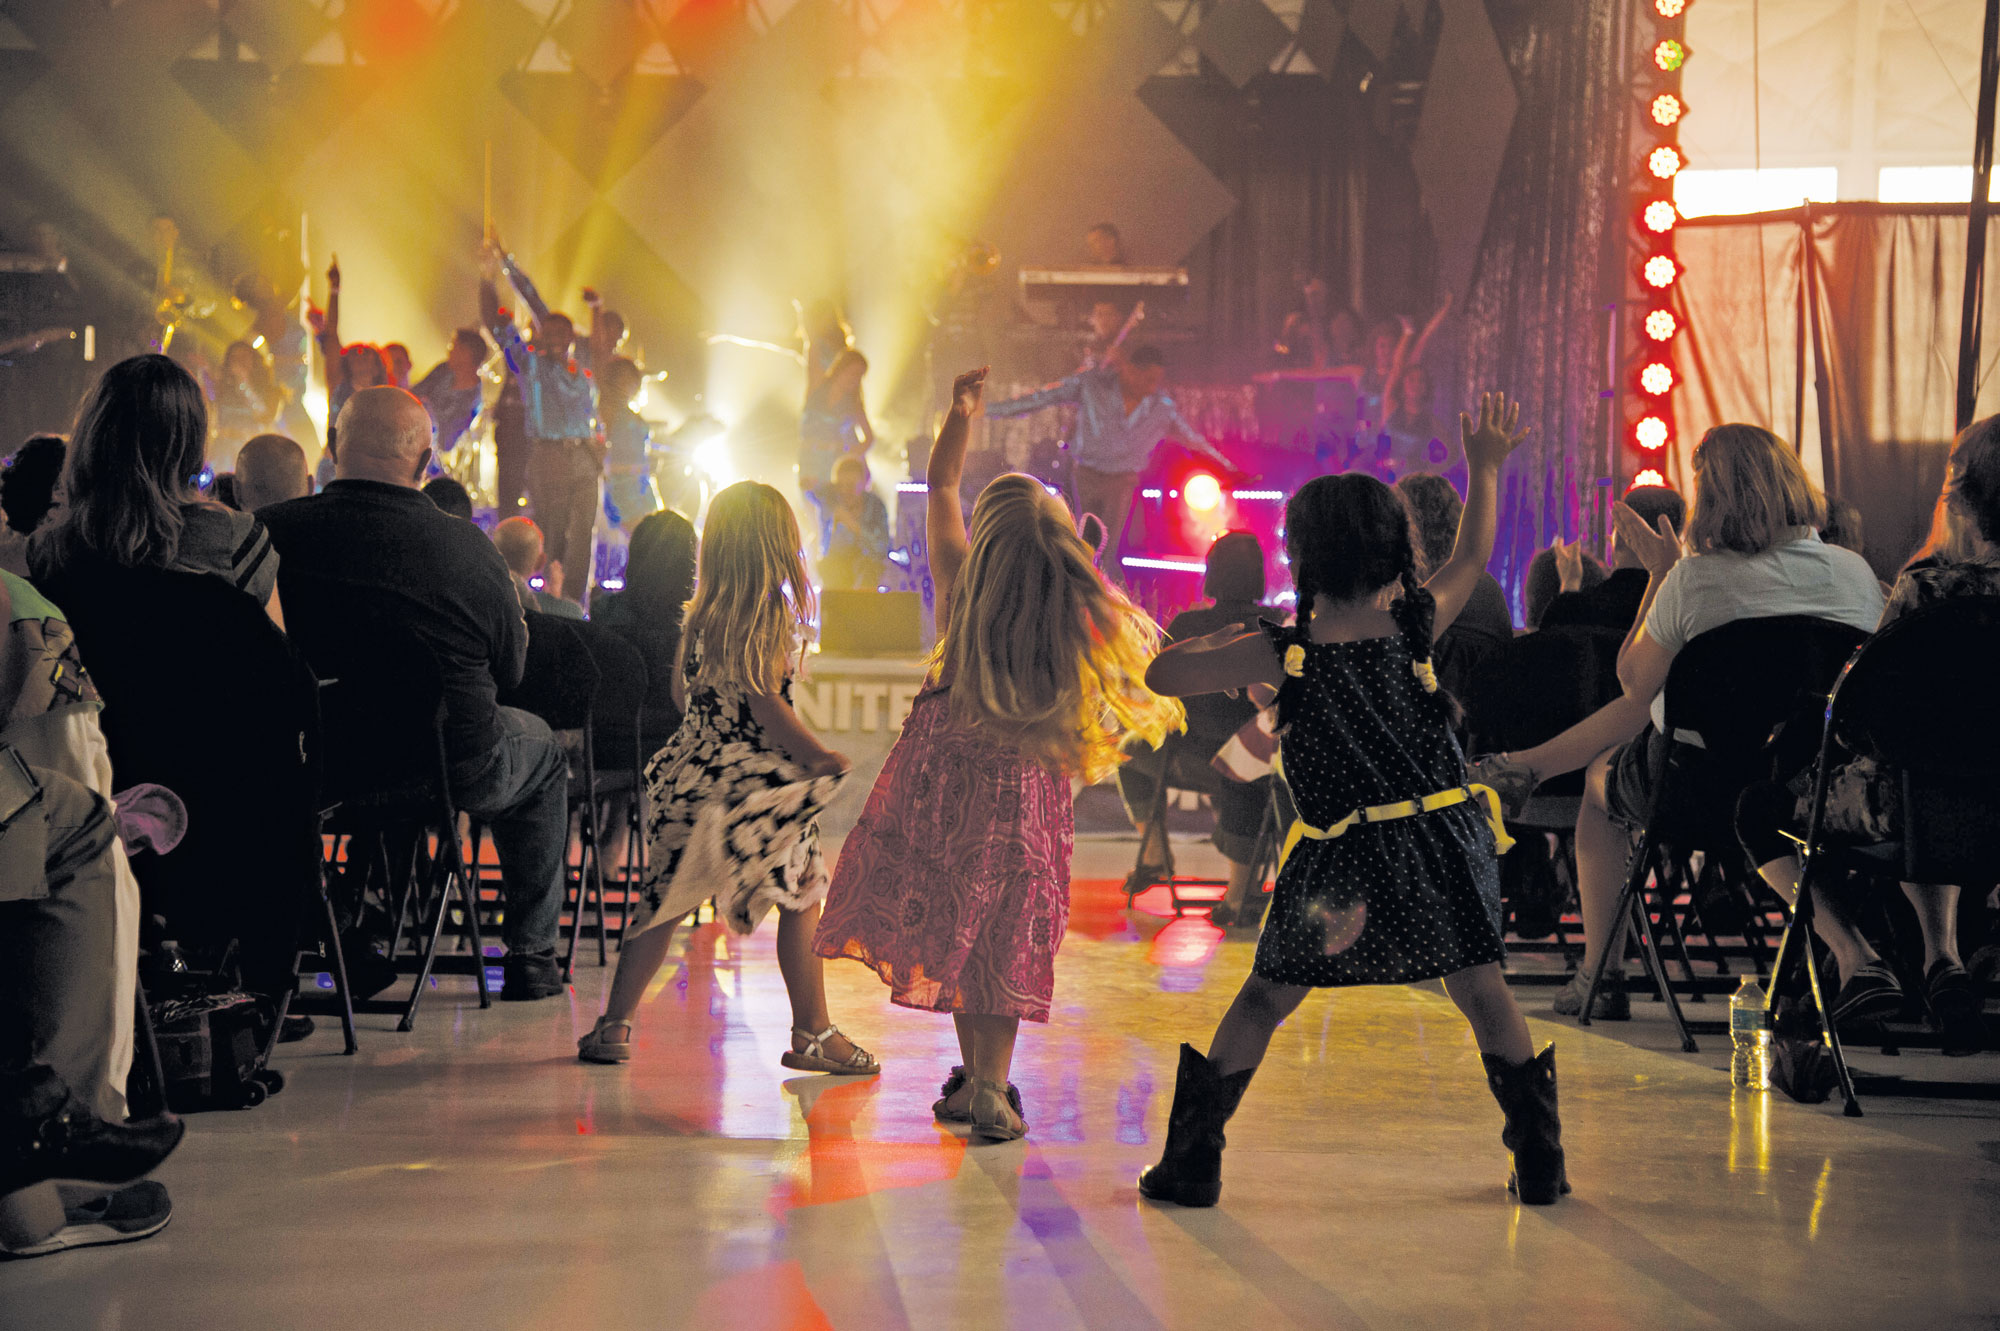 (U.S. Air Force Senior Airman Tiffany DeNault) PETERSON AIR FORCE BASE, Colo. – Children dance in the aisle during the Tops in Blue performance at Hangar 140, July 1, 2015. The Tops in Blue performers travel to 20 countries putting on 75 shows in seven months, promoting community relations, recruiting efforts and serving as ambassadors for the United States and the U.S. Air Force.